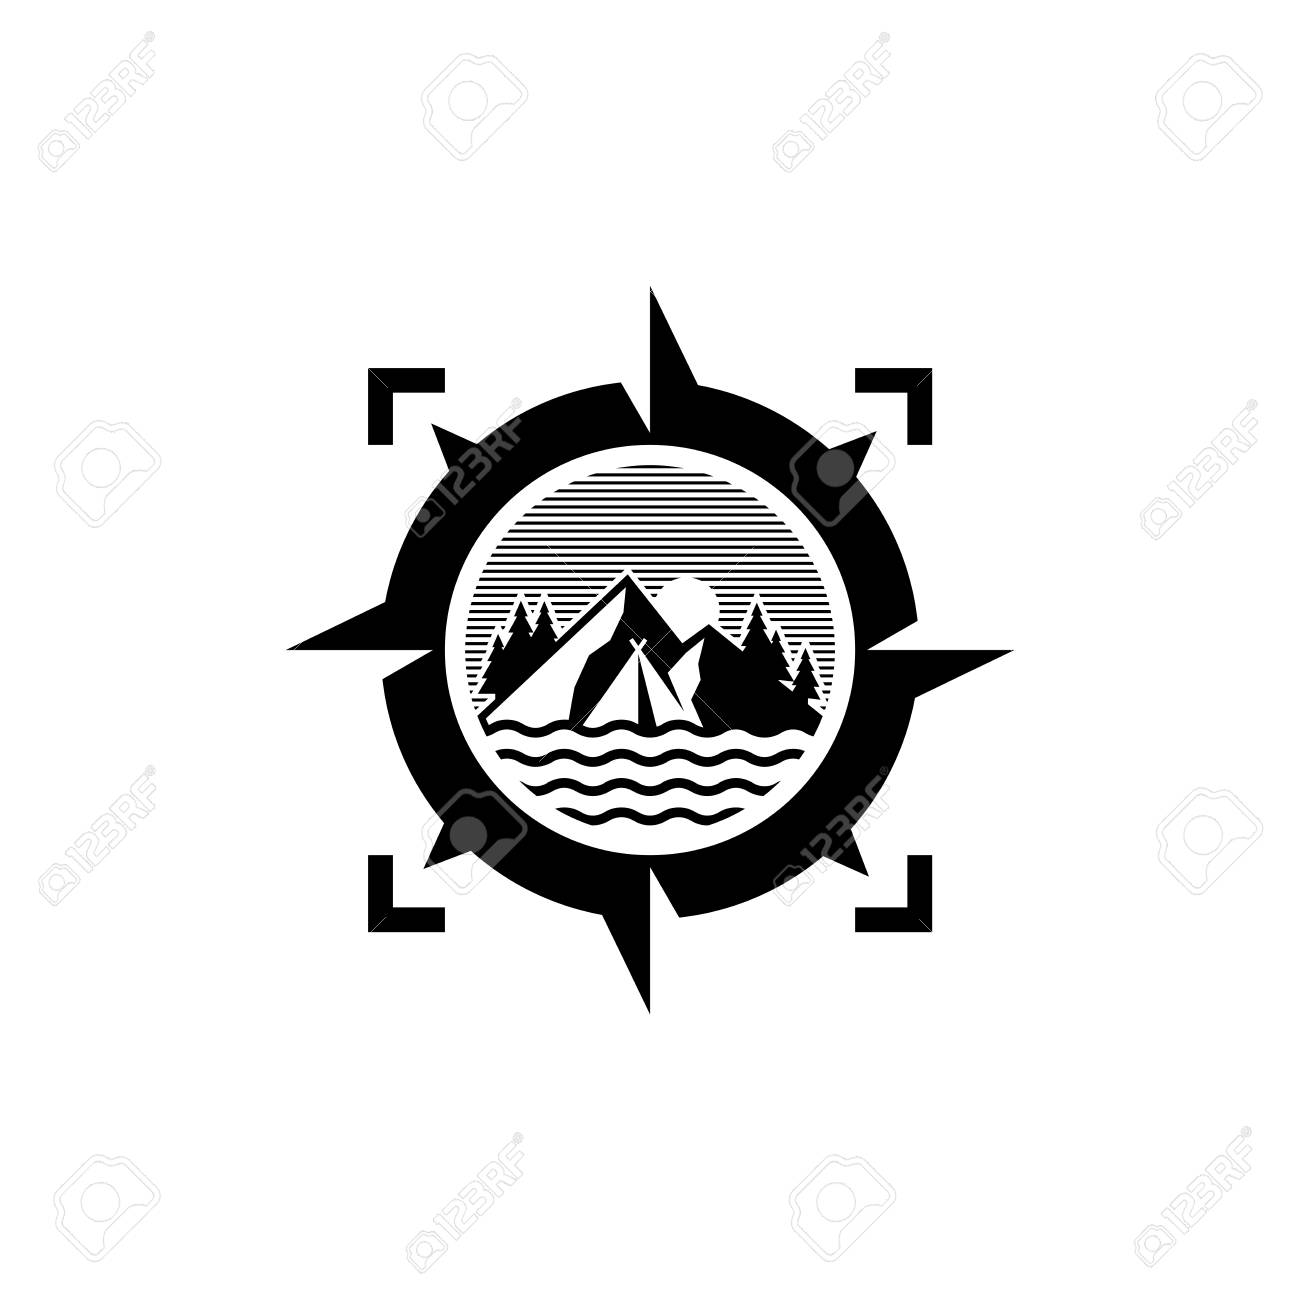 Adventure Logo Design Outdoor Logo Design Isolated On White Royalty Free Cliparts Vectors And Stock Illustration Image 118779634